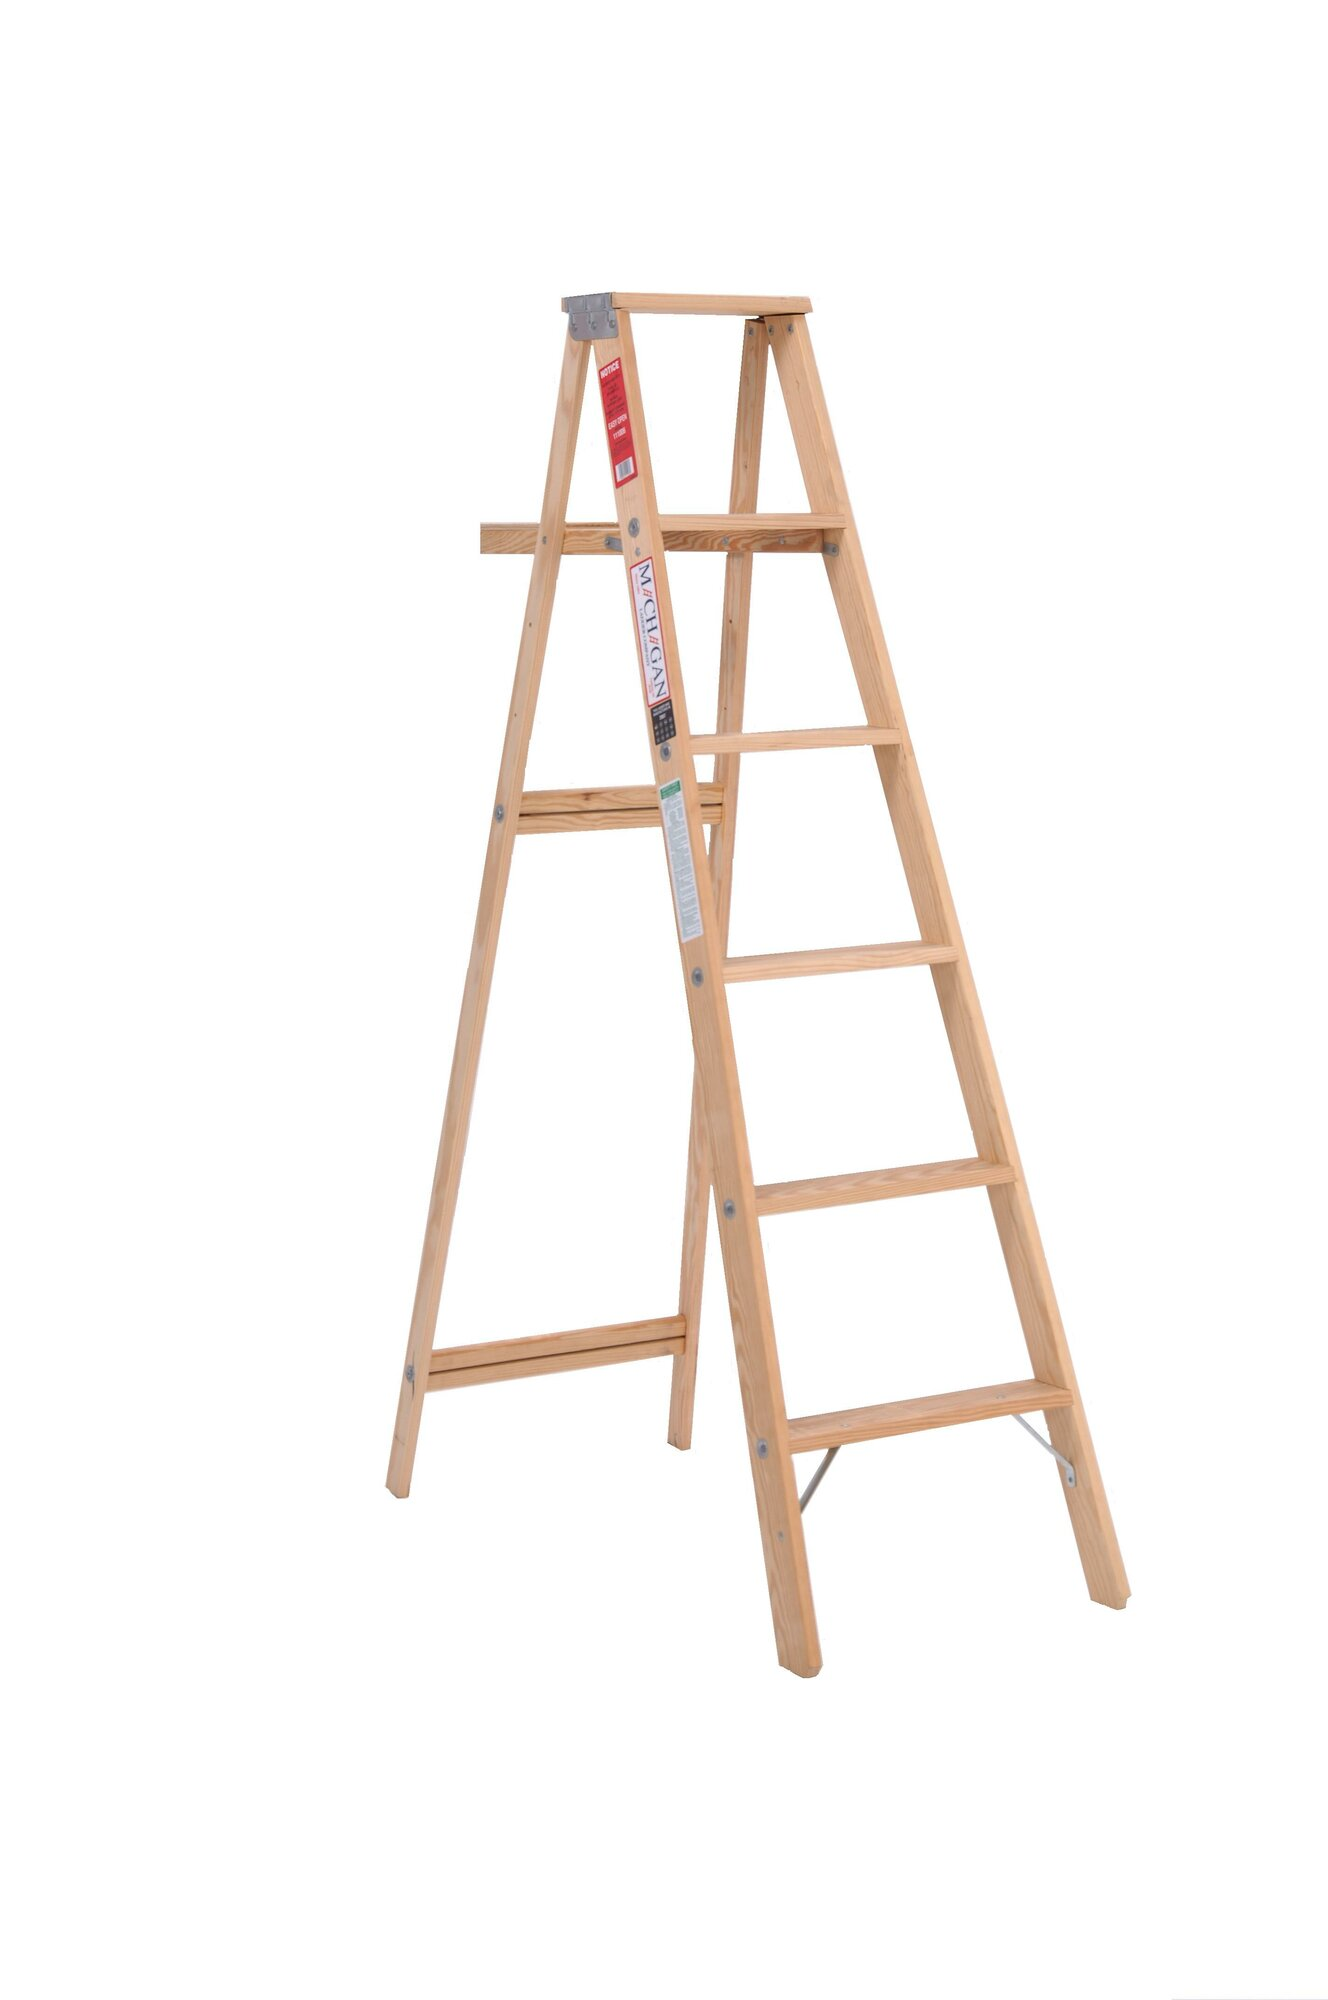 Michigan Ladder 5 Ft Wood Step Ladder With 200 Lb Load